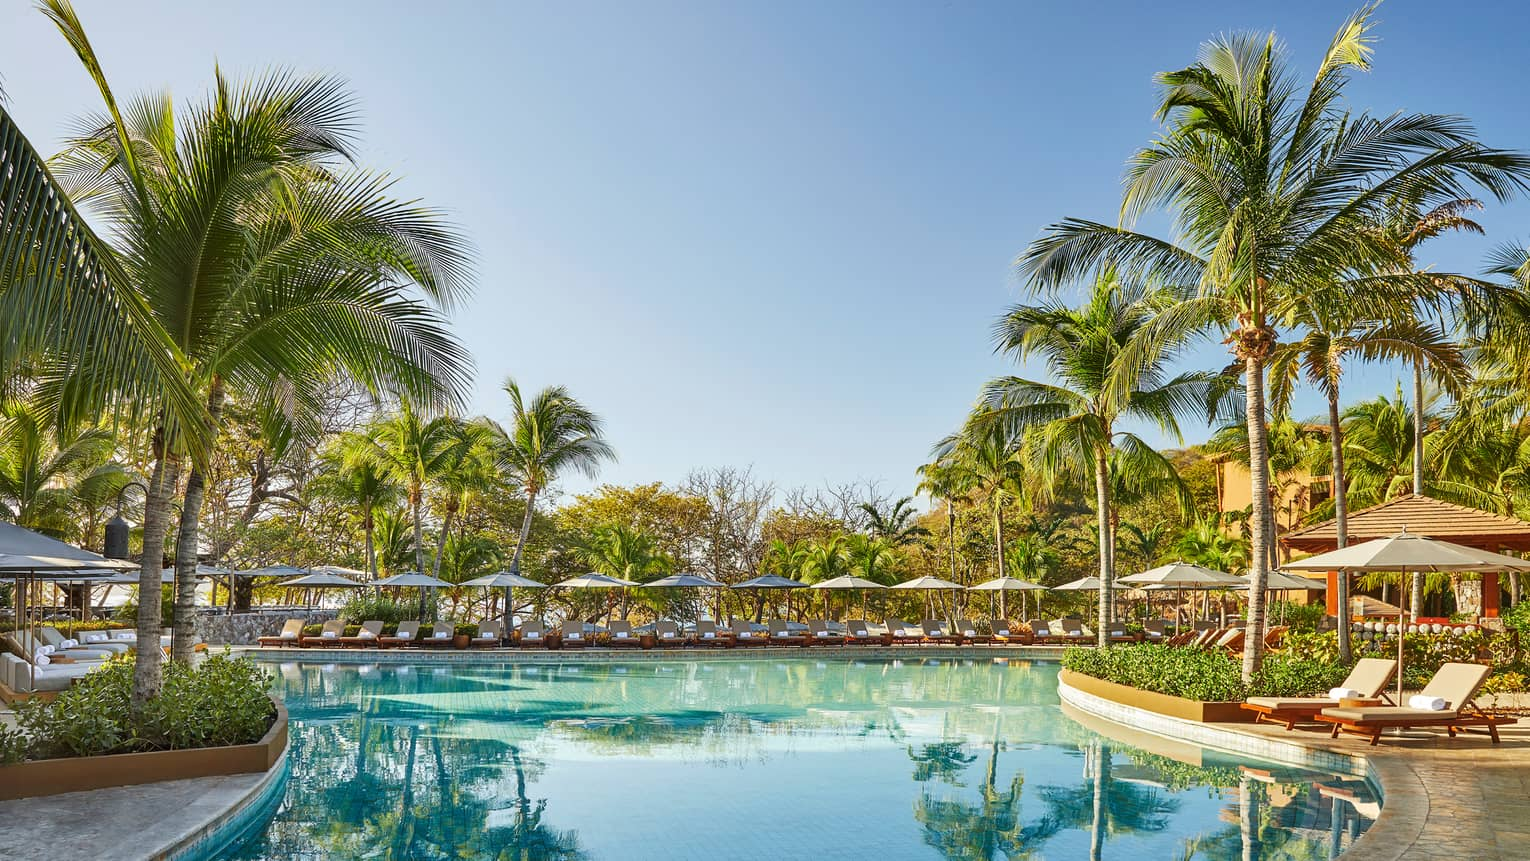 Tall palm trees around sunny outdoor swimming pool lined with patio chairs, umbrellas